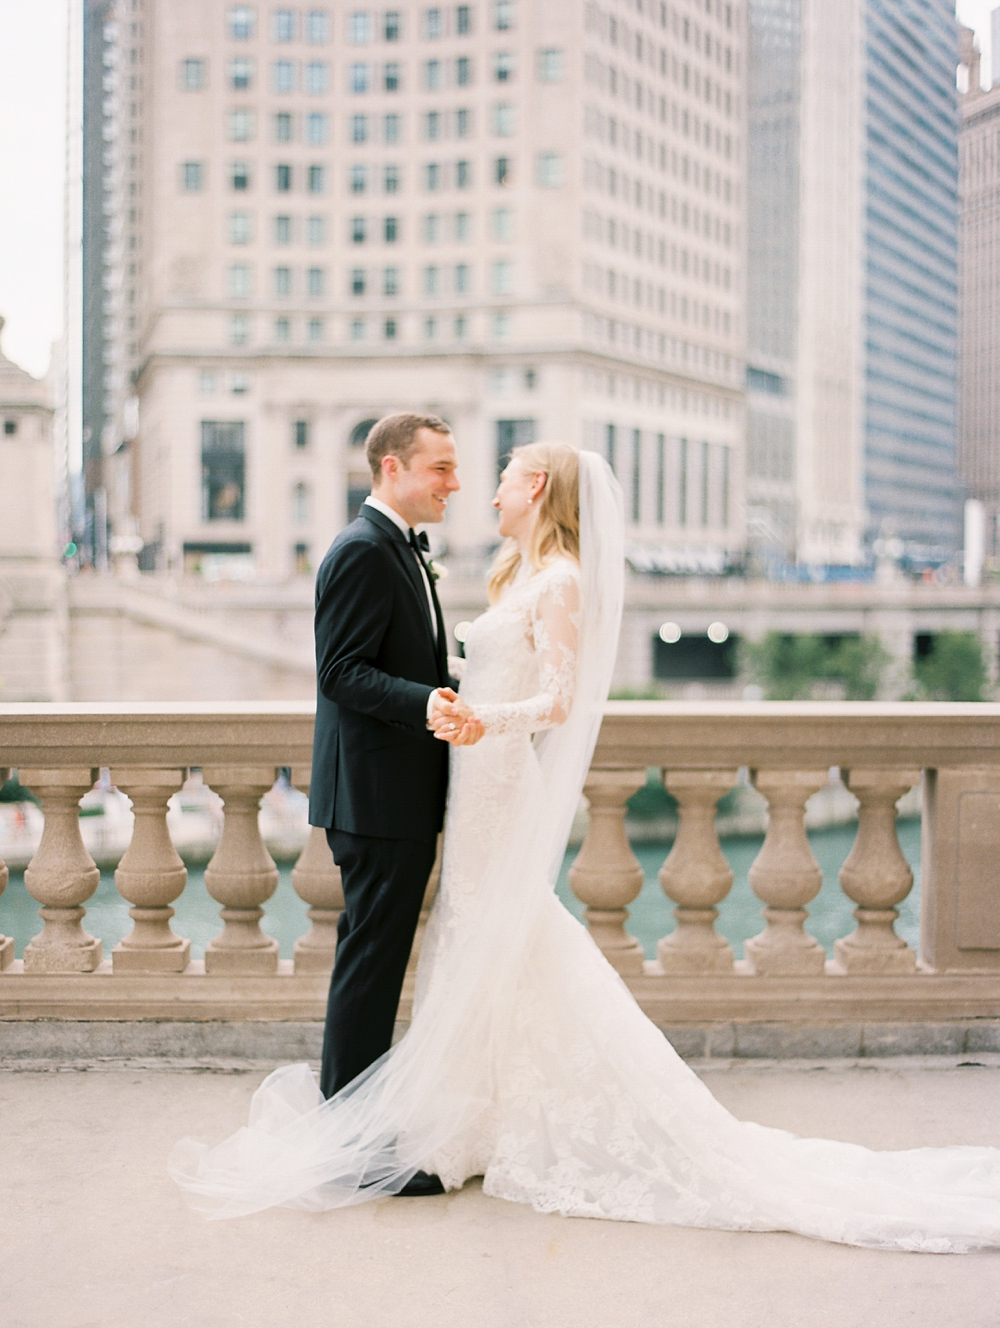 Kristin-La-Voie-Photography-Chicago-Wedding-15